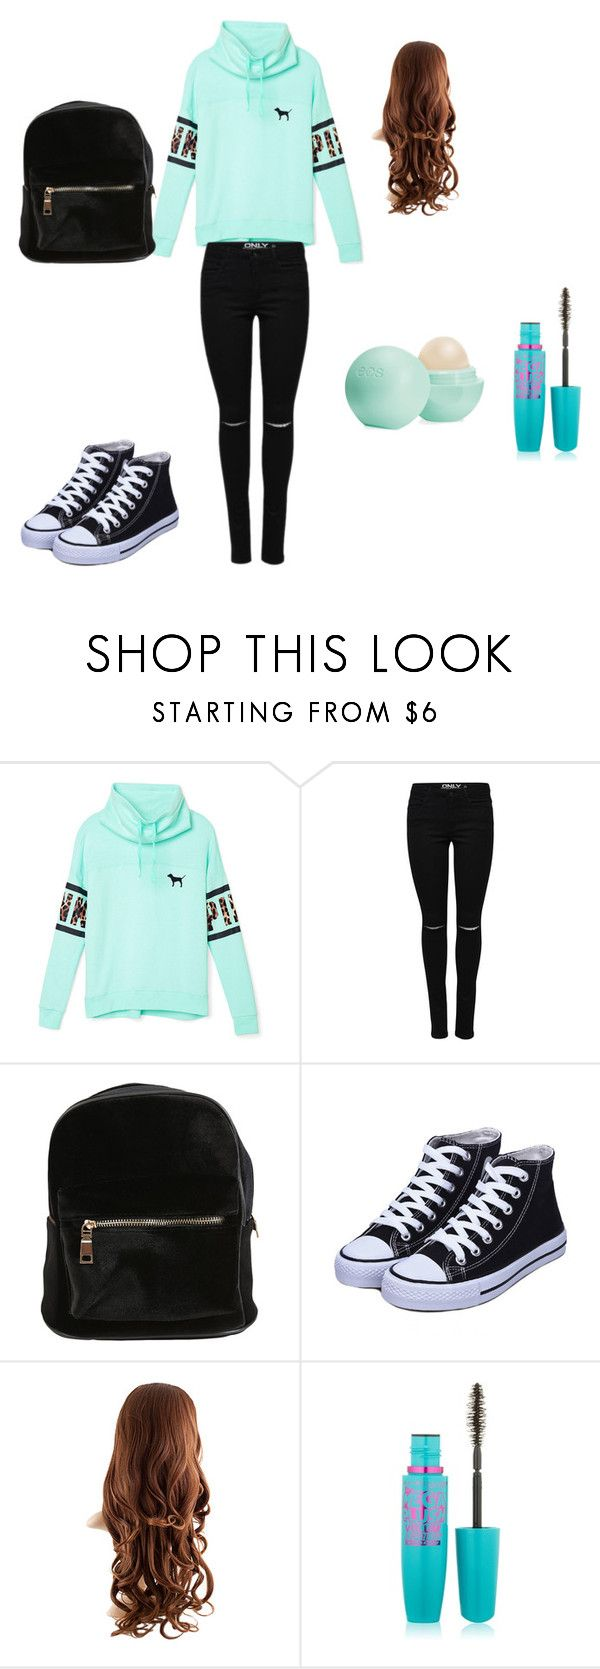 lazy day outfit for school clothes for school pinterest outfit outfit ideen und kleidung. Black Bedroom Furniture Sets. Home Design Ideas